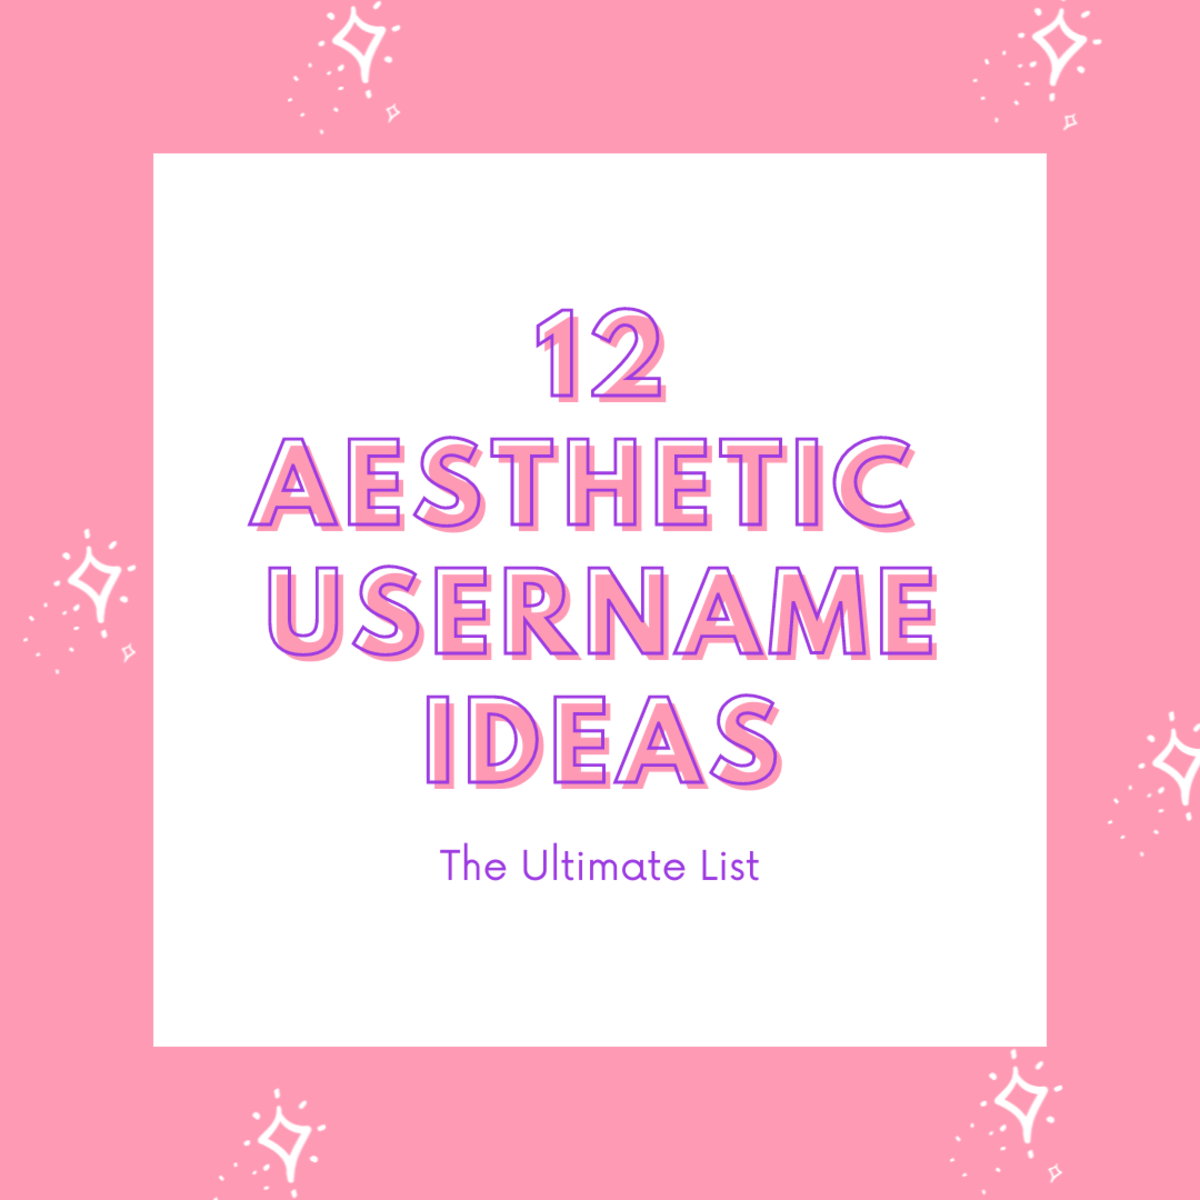 In this guide, we're going to be taking a look at 12 aesthetic usernames ideas!